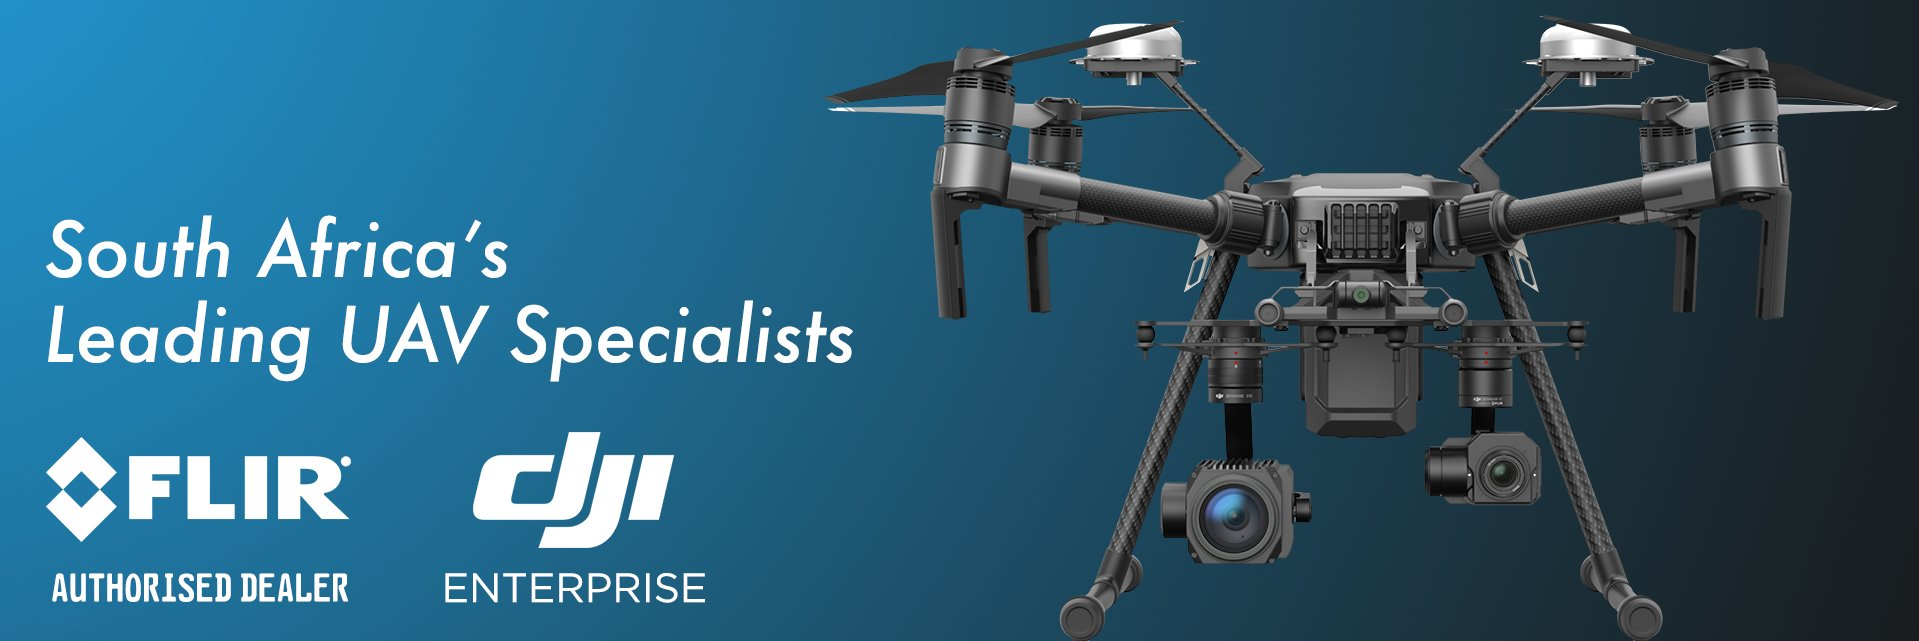 South Africa's Leading UAV Specialists